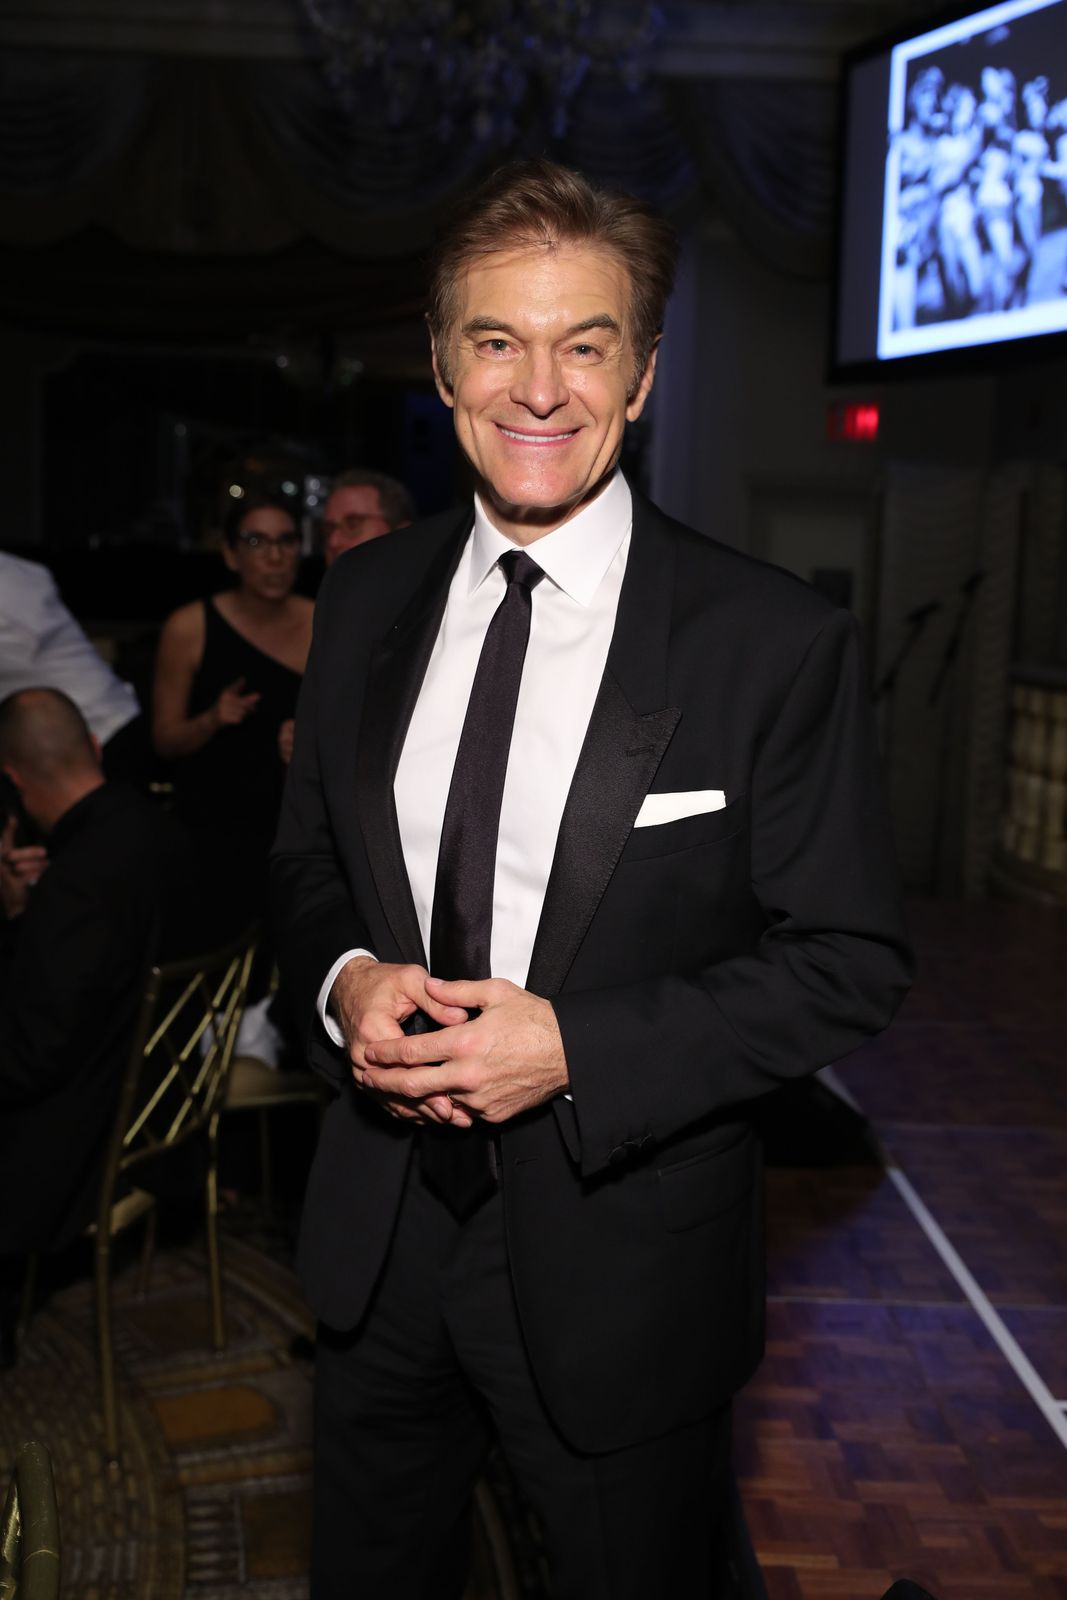 Mehmet Oz at the 7th Annual Order Of The Golden Sphinx Gala at The Pierre, A Taj Hotel on April 15, 2019 in New York City. | Photo: Getty Images